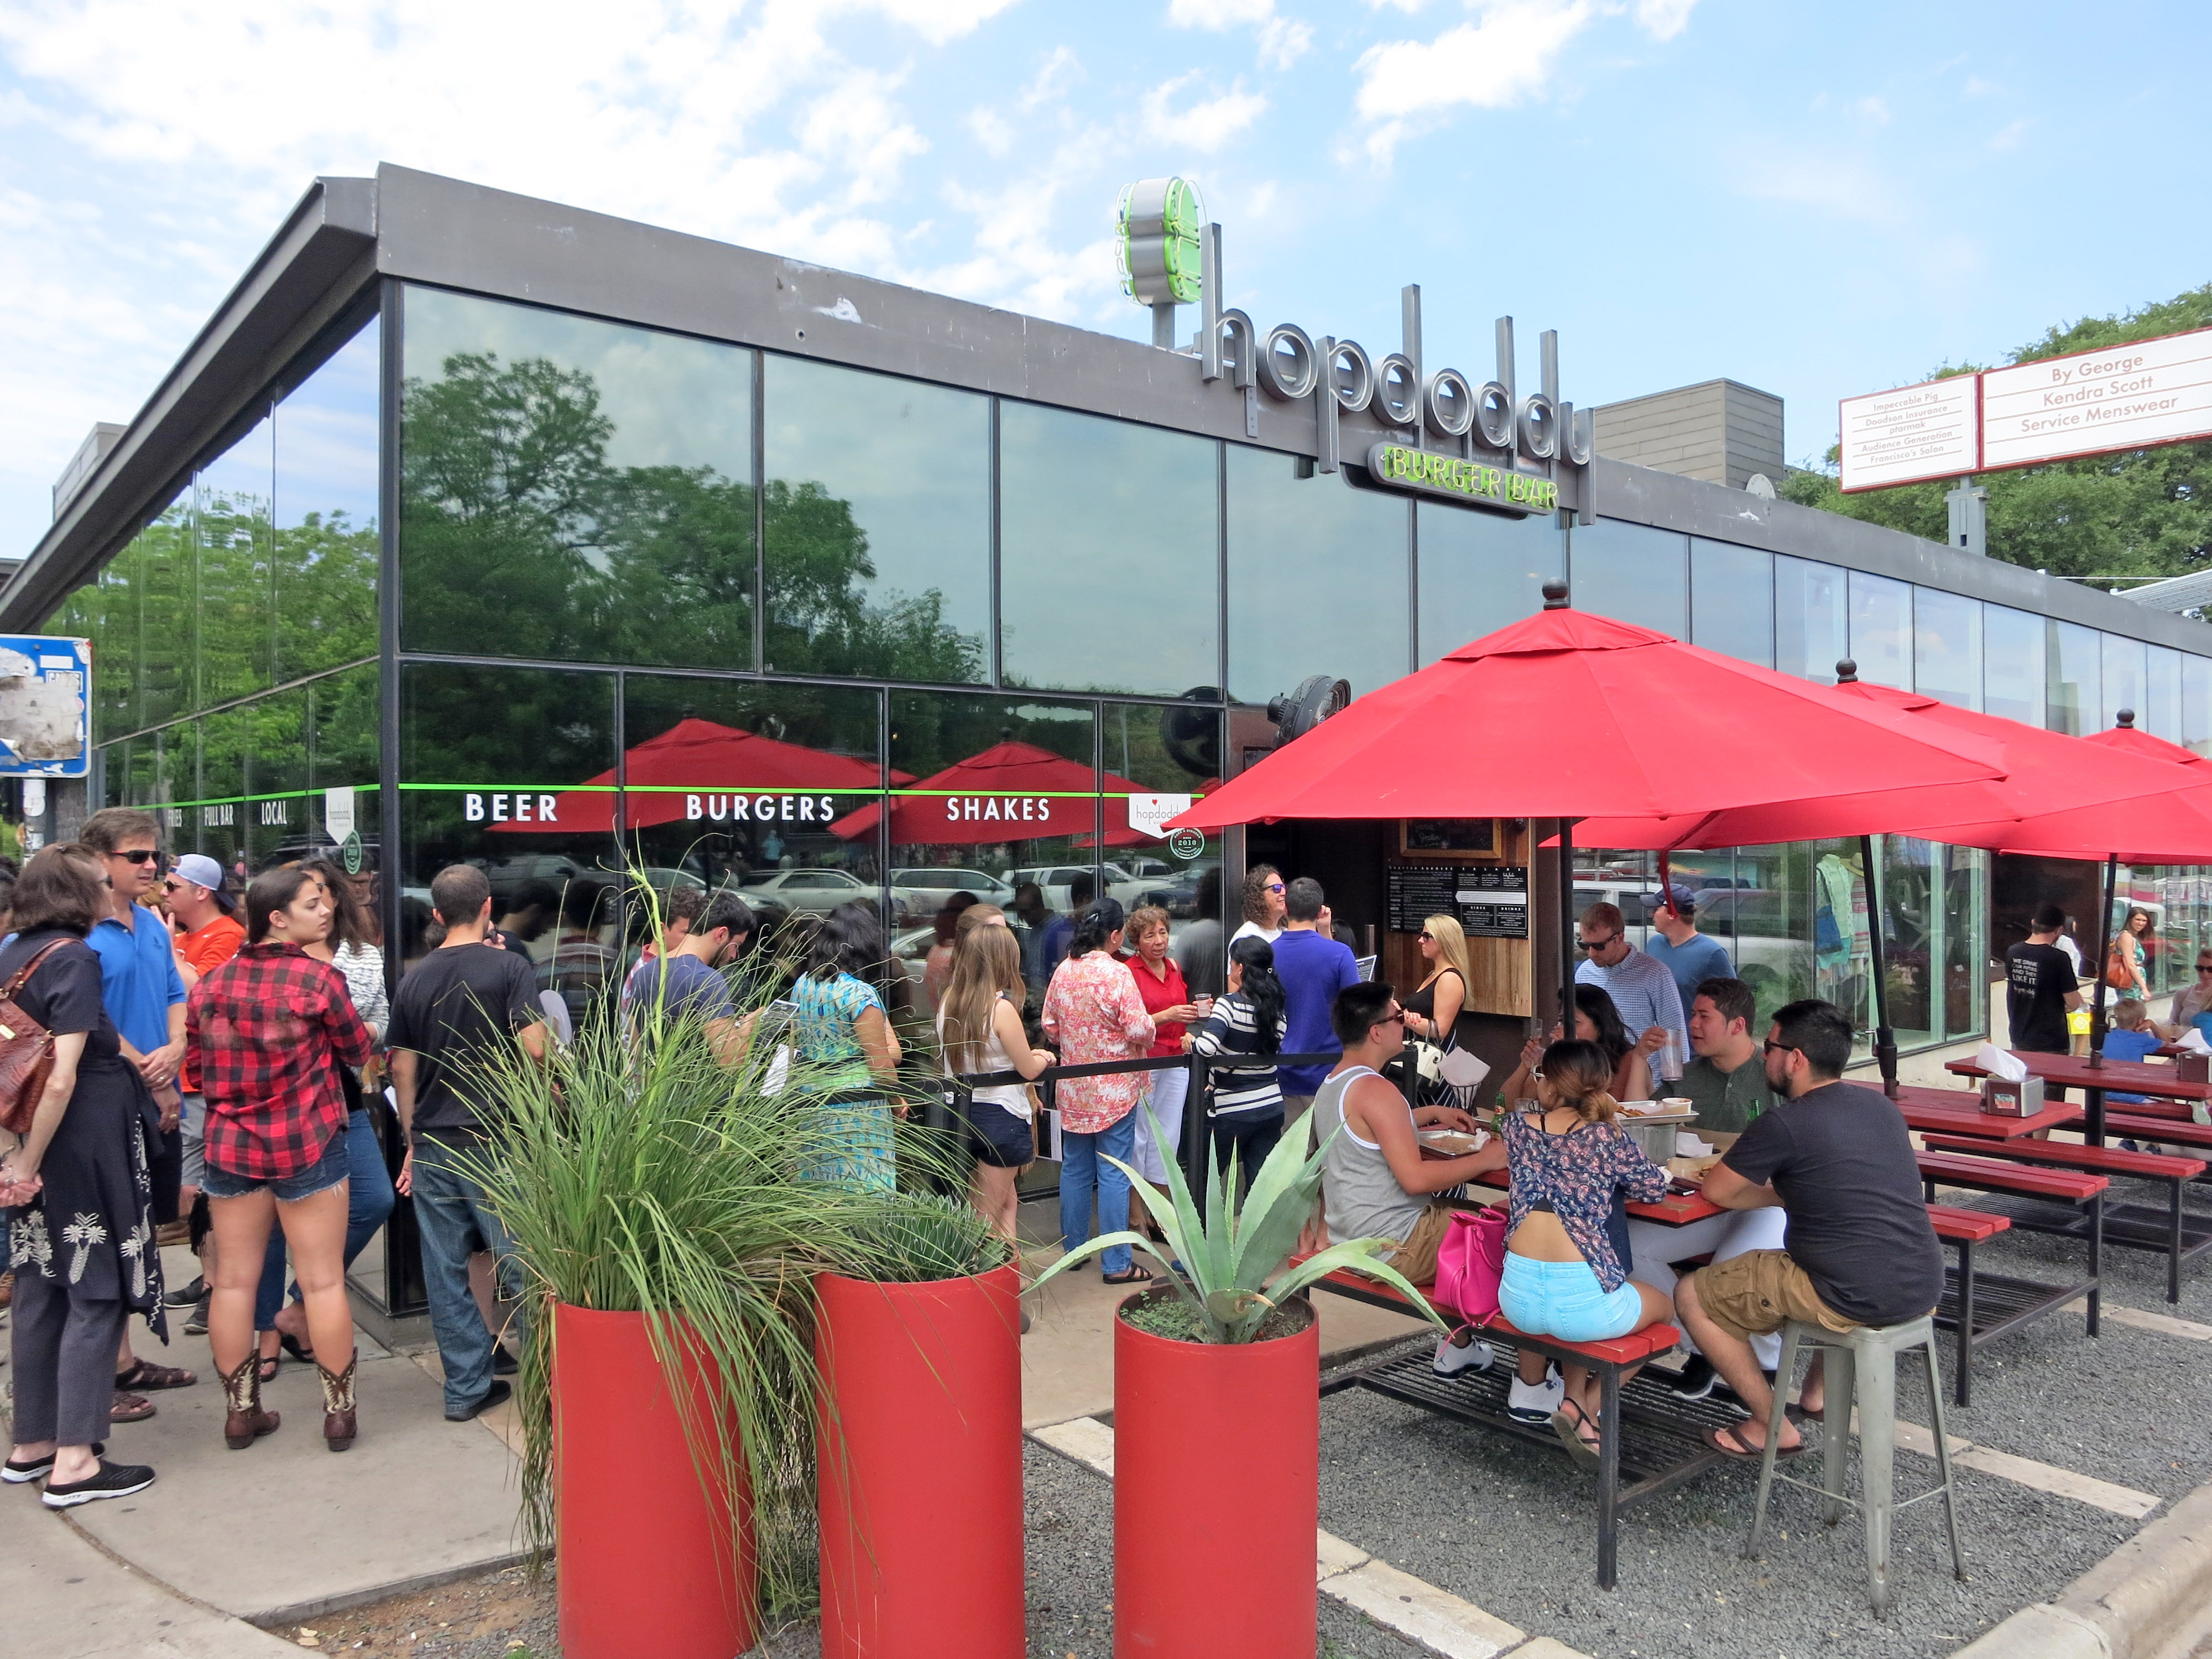 Image result for hopdoddy austin south congress